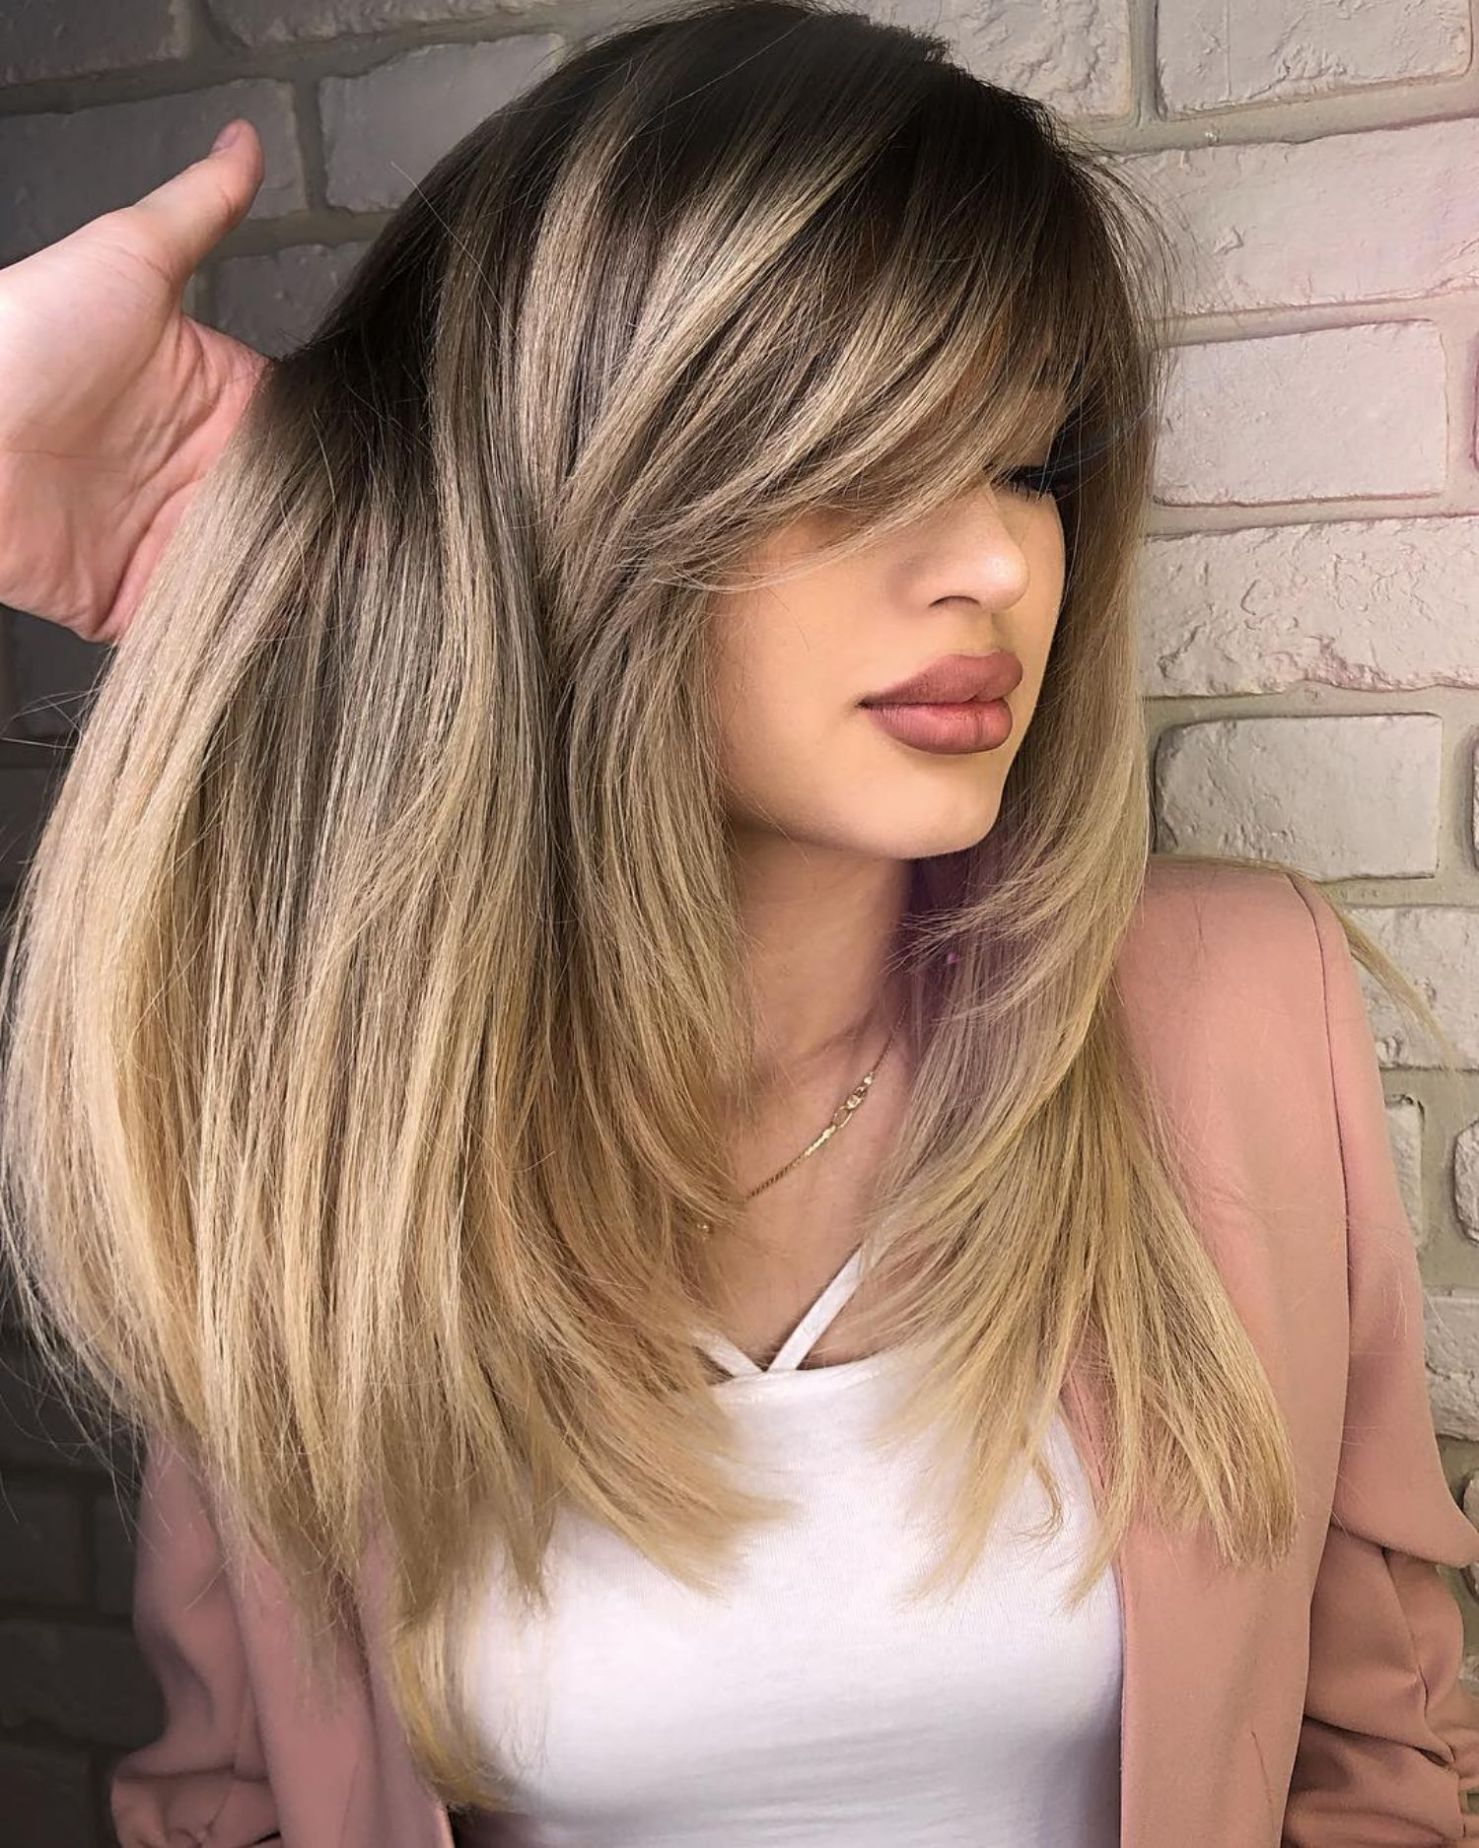 Cool Bangs For Long Hair: 50 Cute And Effortless Long Layered Haircuts With Bangs